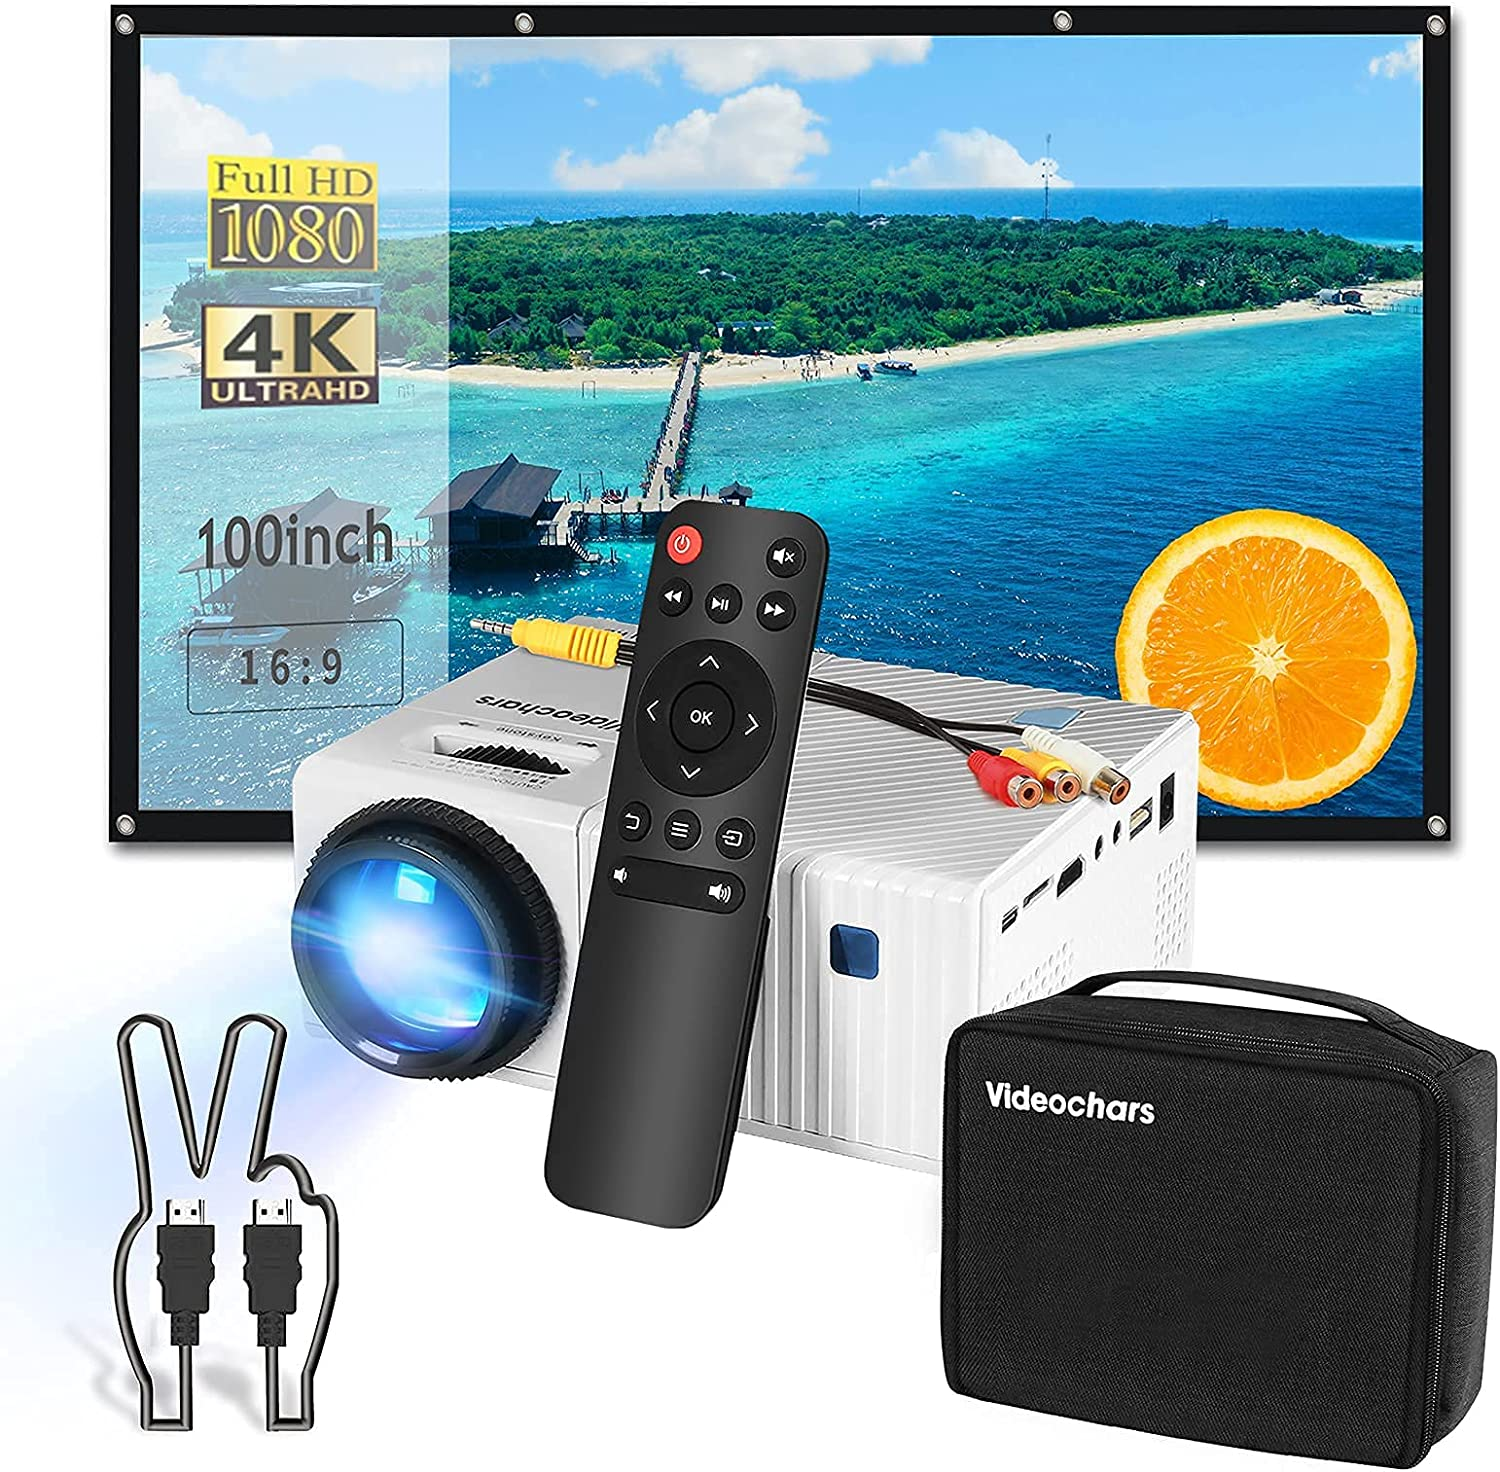 5 in 1 Home Theater Set, Compact Size Native 1080P Projector with 100inch Projector Screen + Portable Bag + HDMI Cable